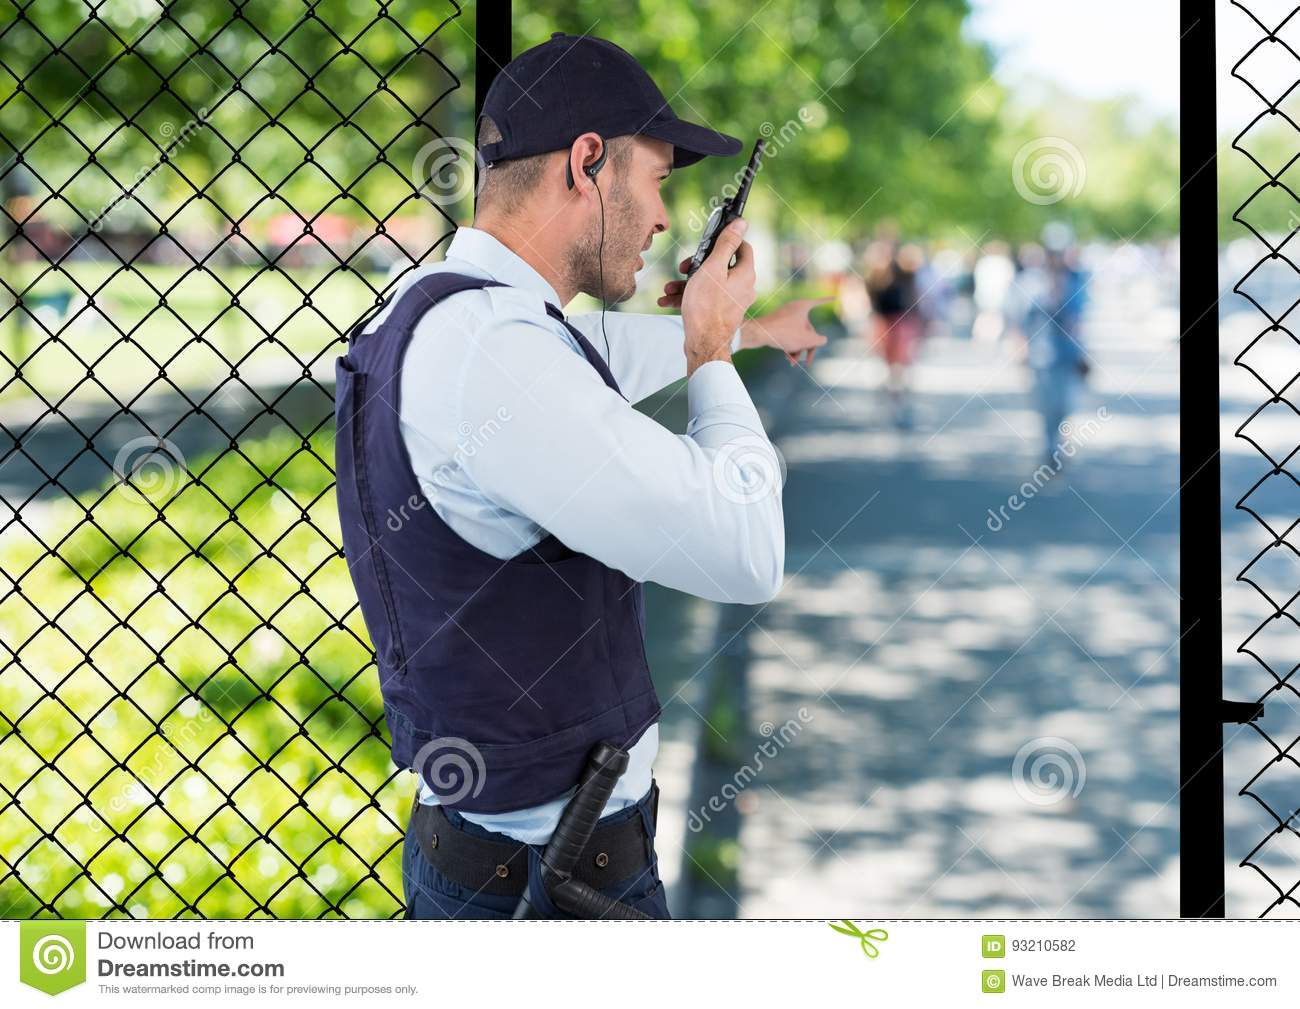 security guard of the park spiking with the walkie-talkie and point to something.